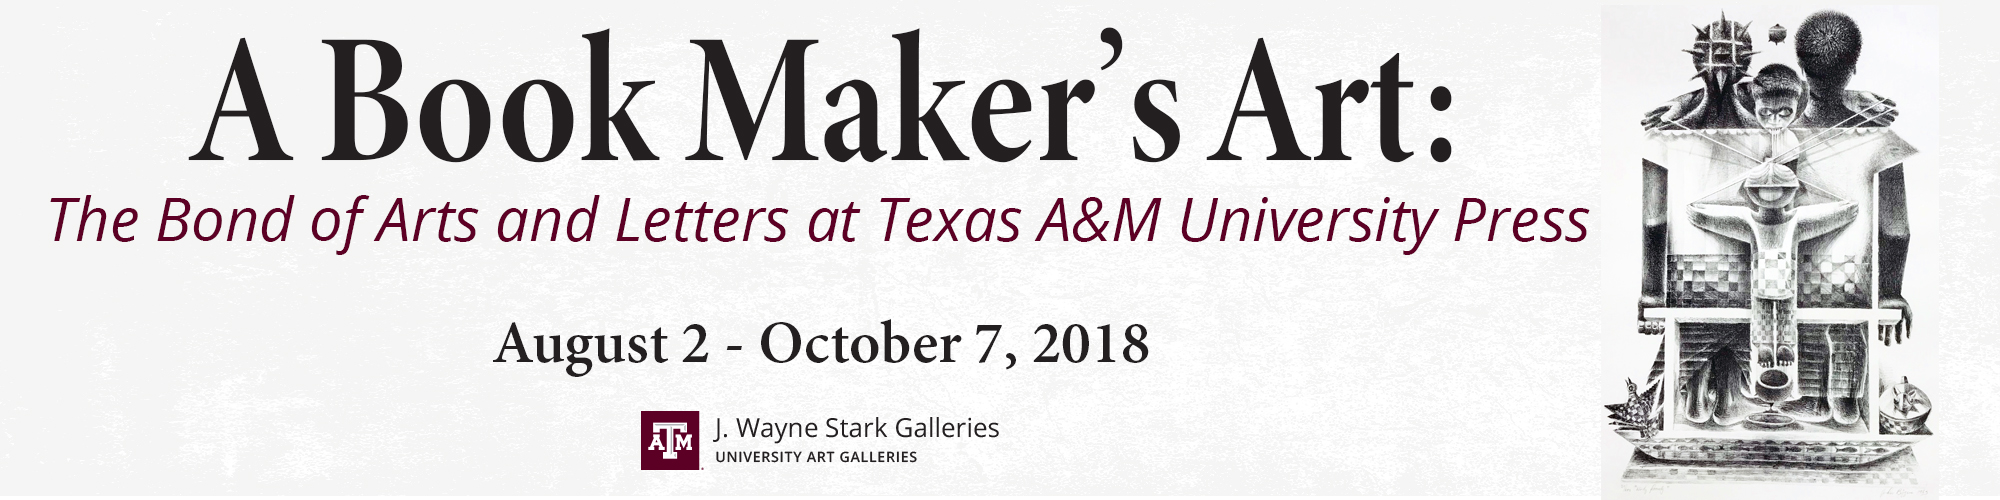 Book Maker's Art Exhibition